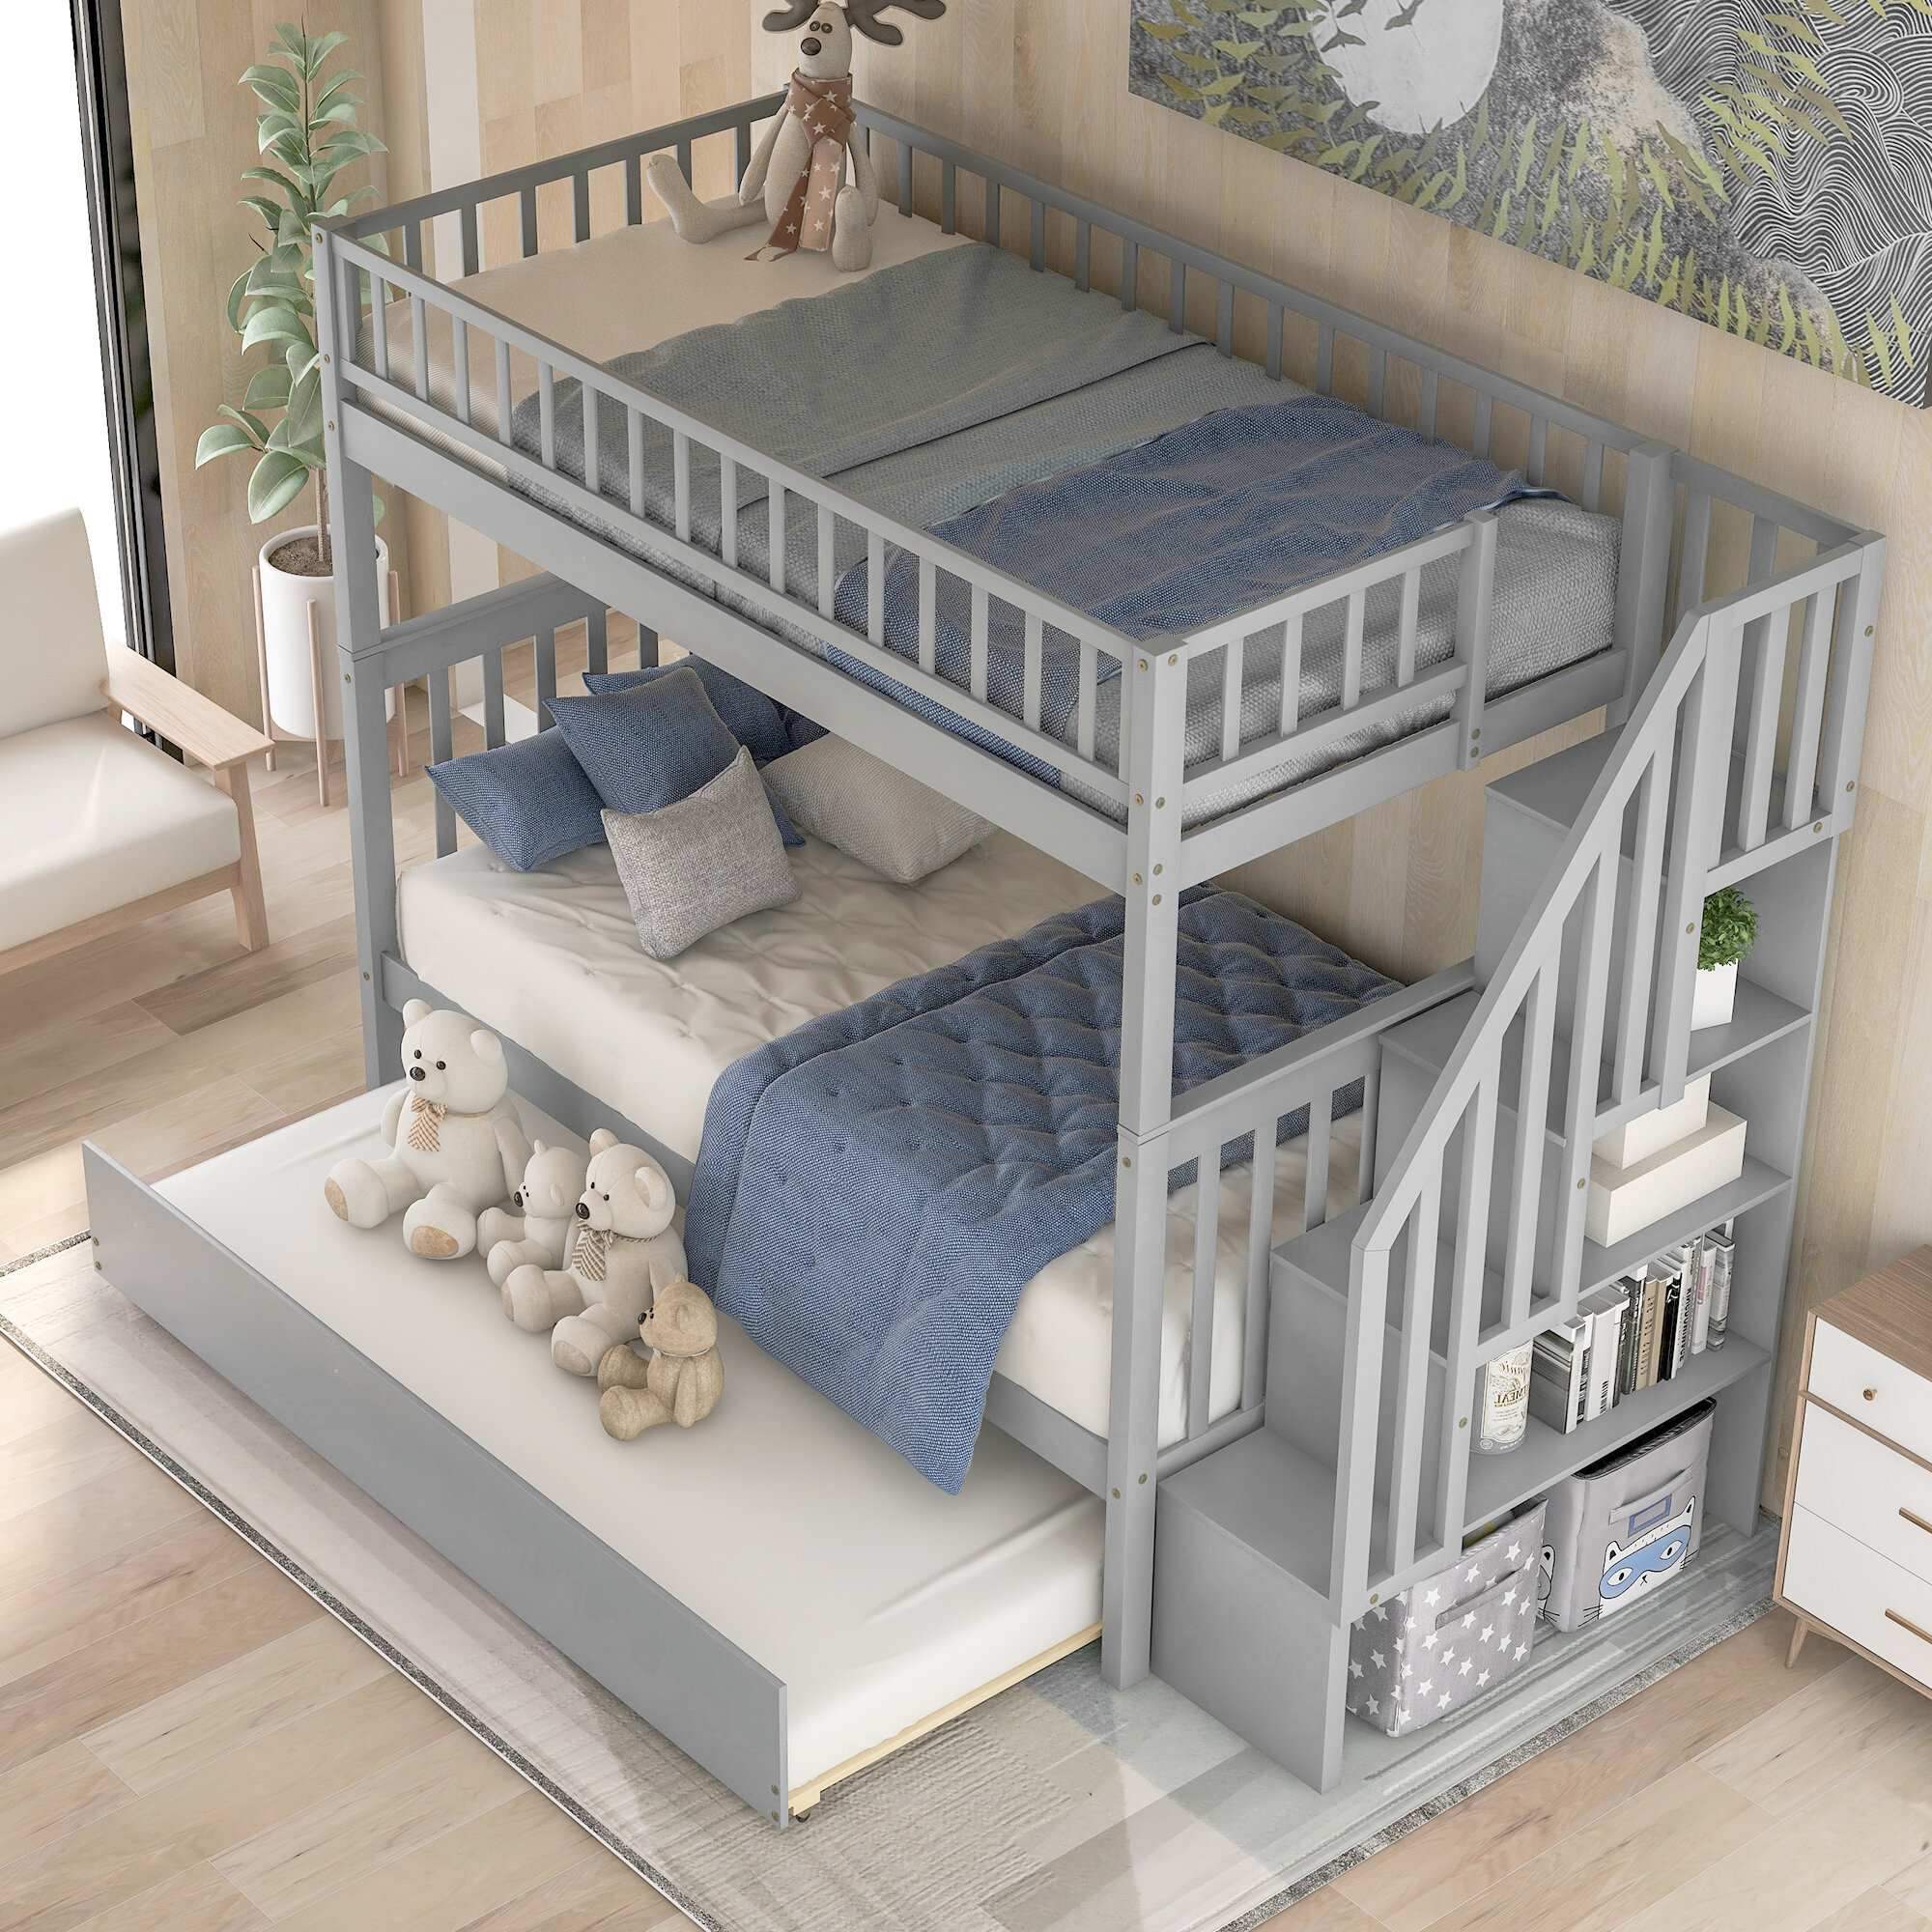 Bunk Trundle Kids Beds Free Shipping Over 35 Wayfair